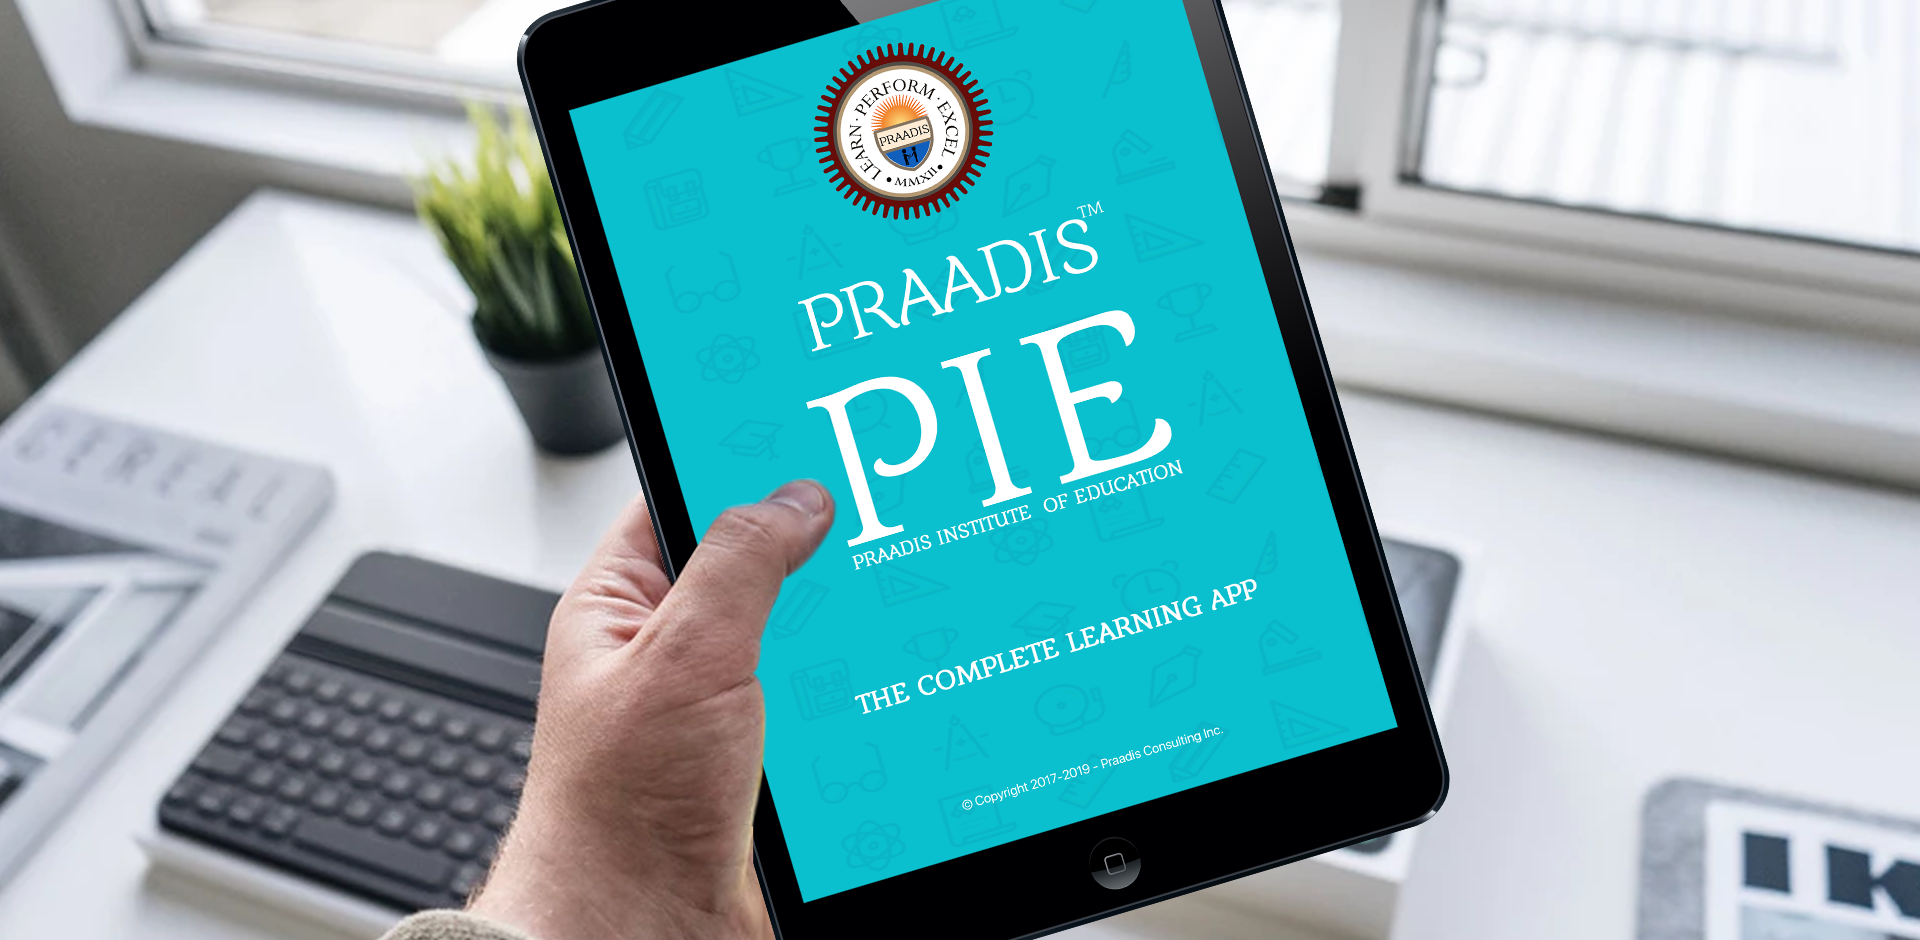 Praadis Education Launches New Complete Learning App